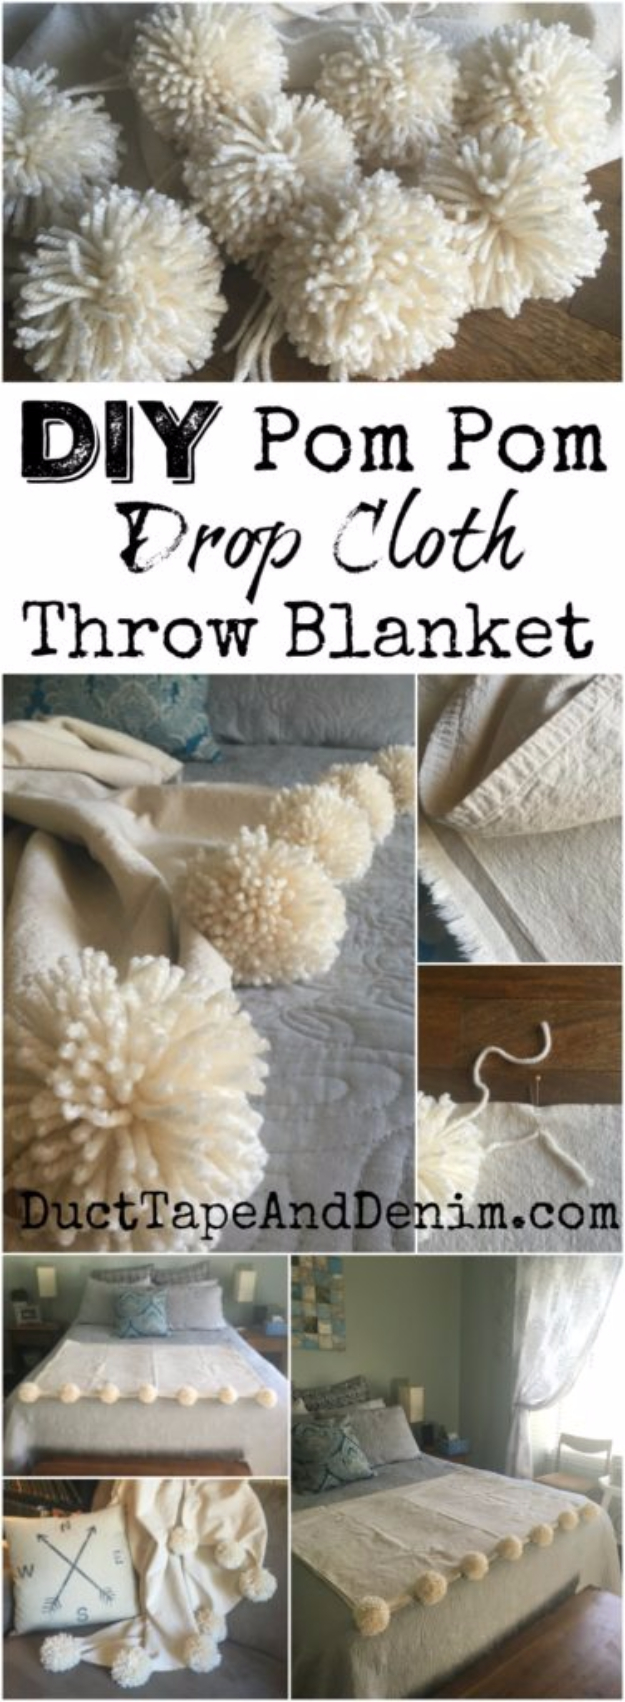 DIY Blankets and Throws - DIY Pom Pom Drop Cloth Throw Blanket - How To Make Easy Home Decor and Warm Covers for Women, Kids, Teens and Adults - Fleece, Knit, No Sew and Easy Projects to Make for Bed and Sofa